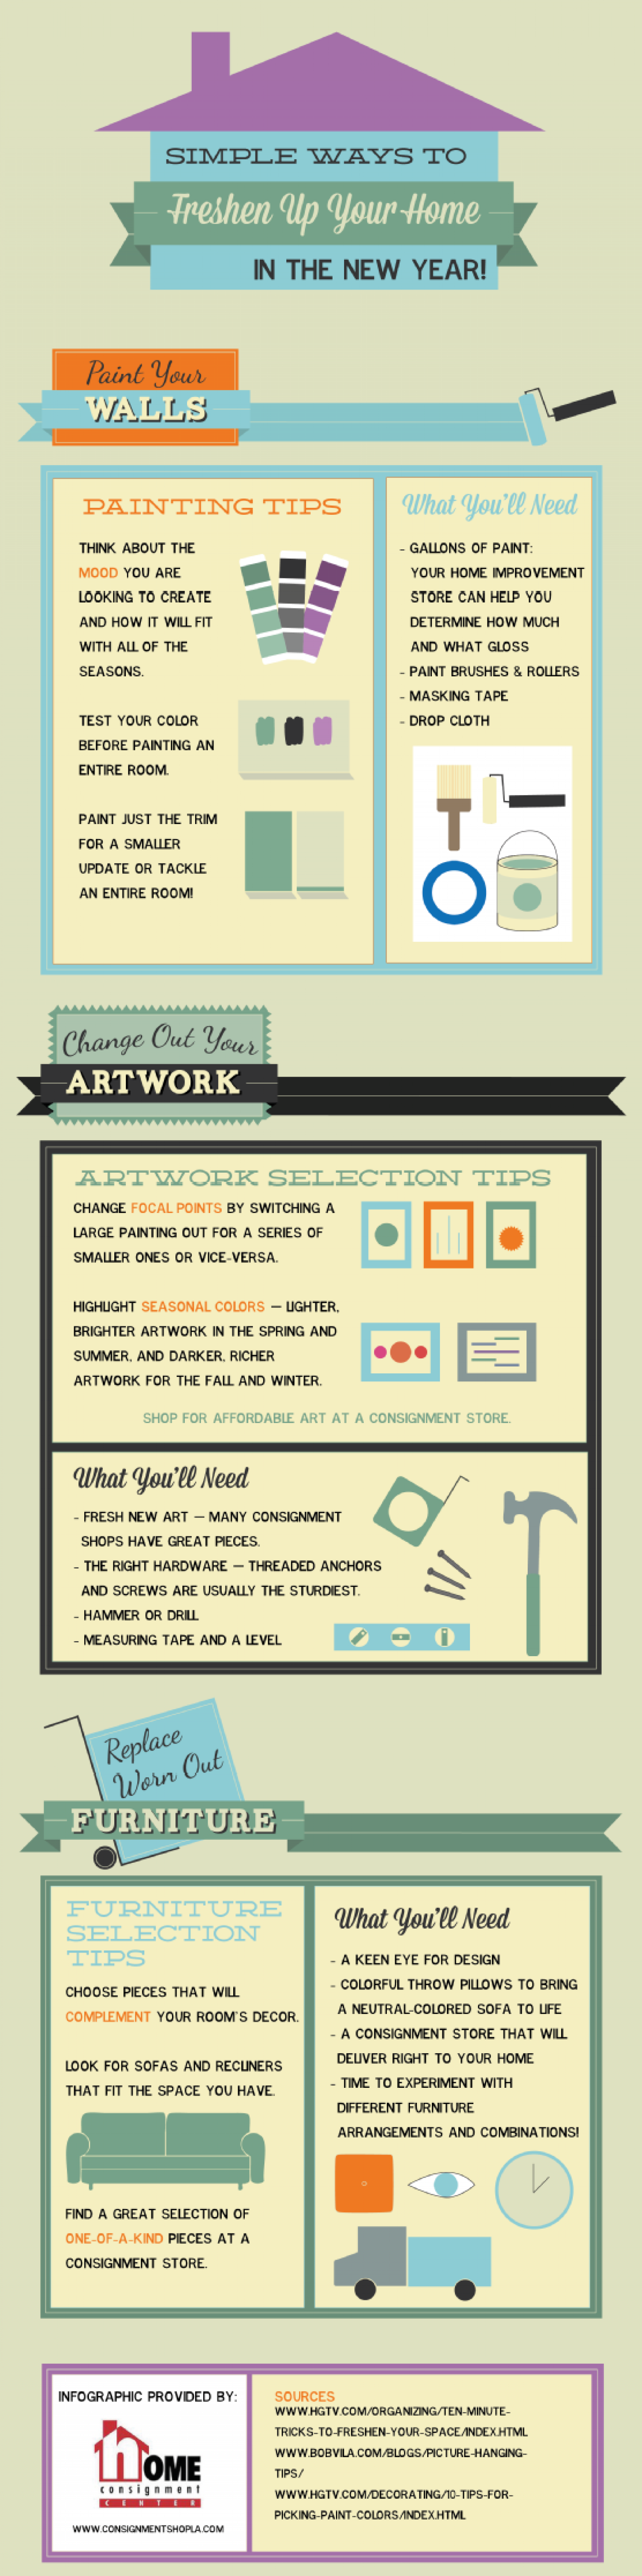 Simple Ways to Freshen Up Your Home in the New Year! Infographic